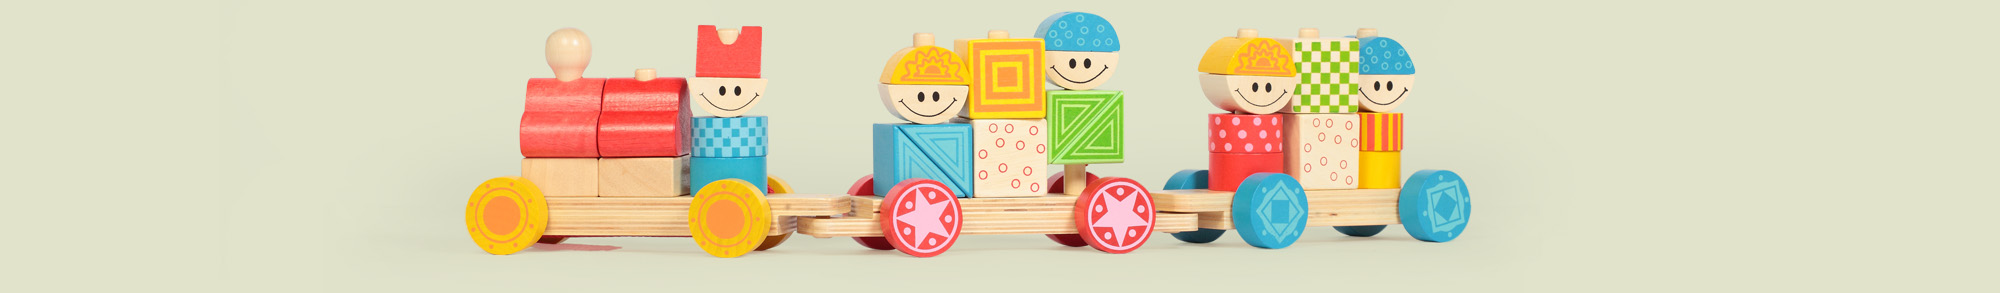 Wooden train for children